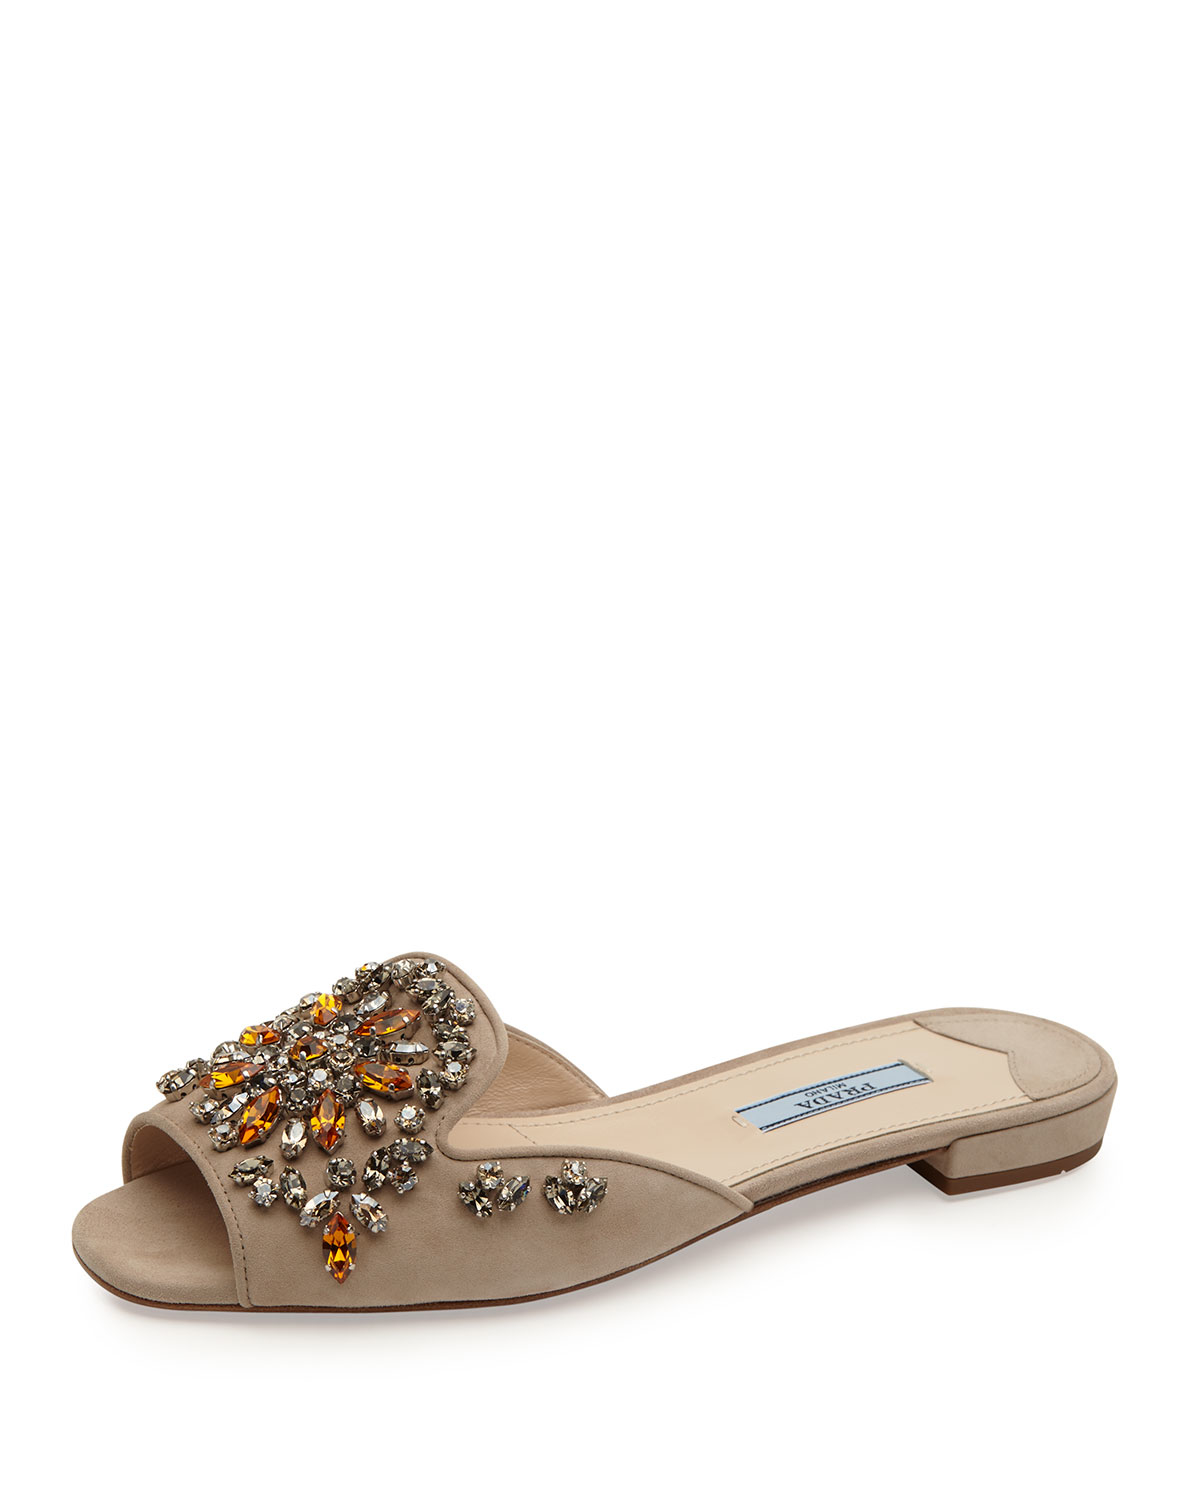 crystal studded flat slides - Red Prada H2MTX